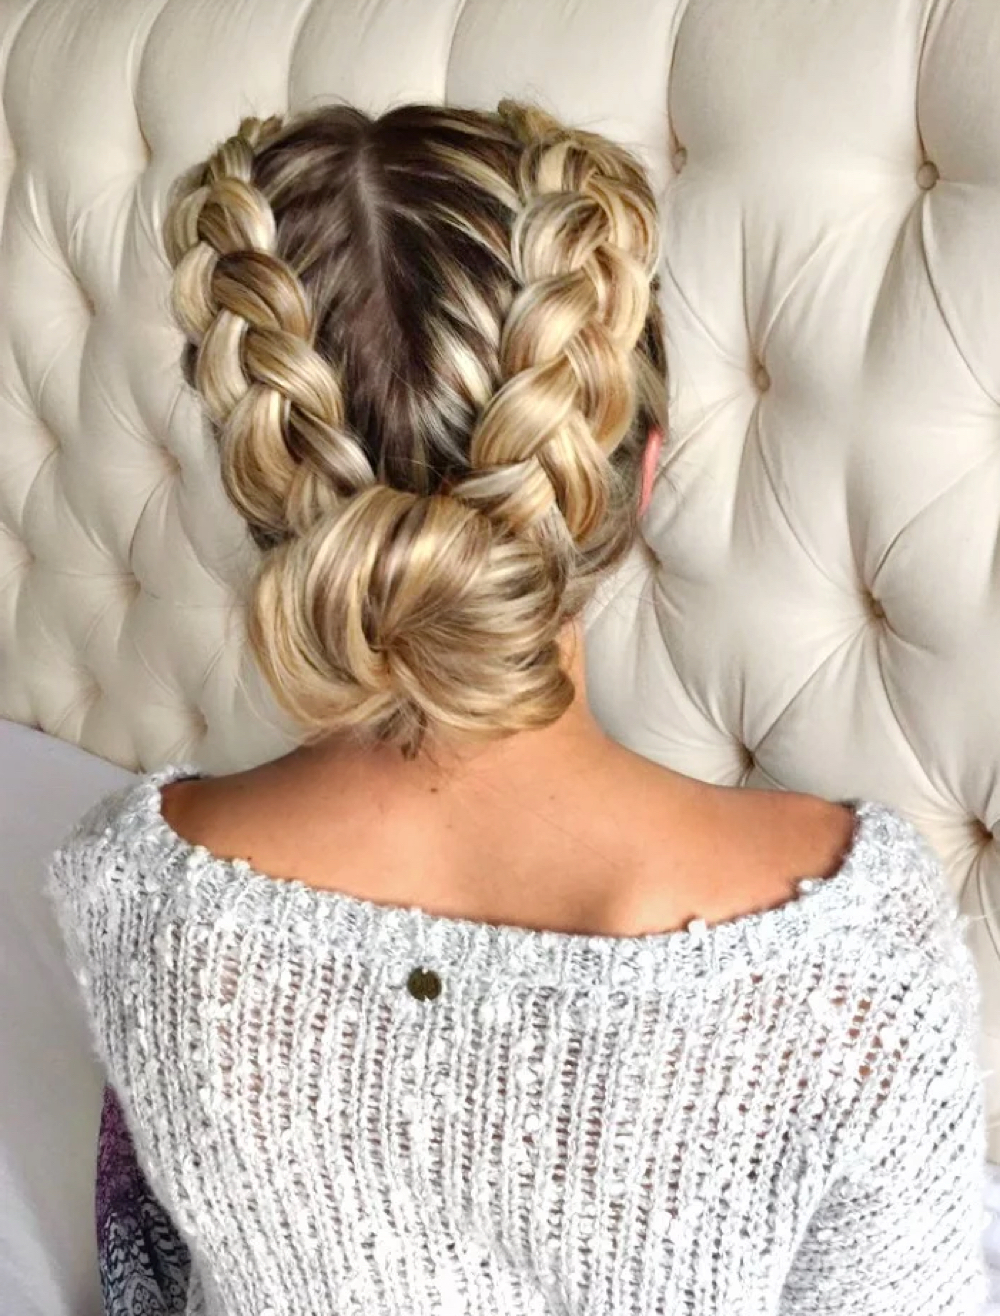 29 Gorgeous Braided Updo Ideas For 2019 With Regard To Popular Cornrows Tight Bun Under Braid Hairstyles (View 17 of 20)